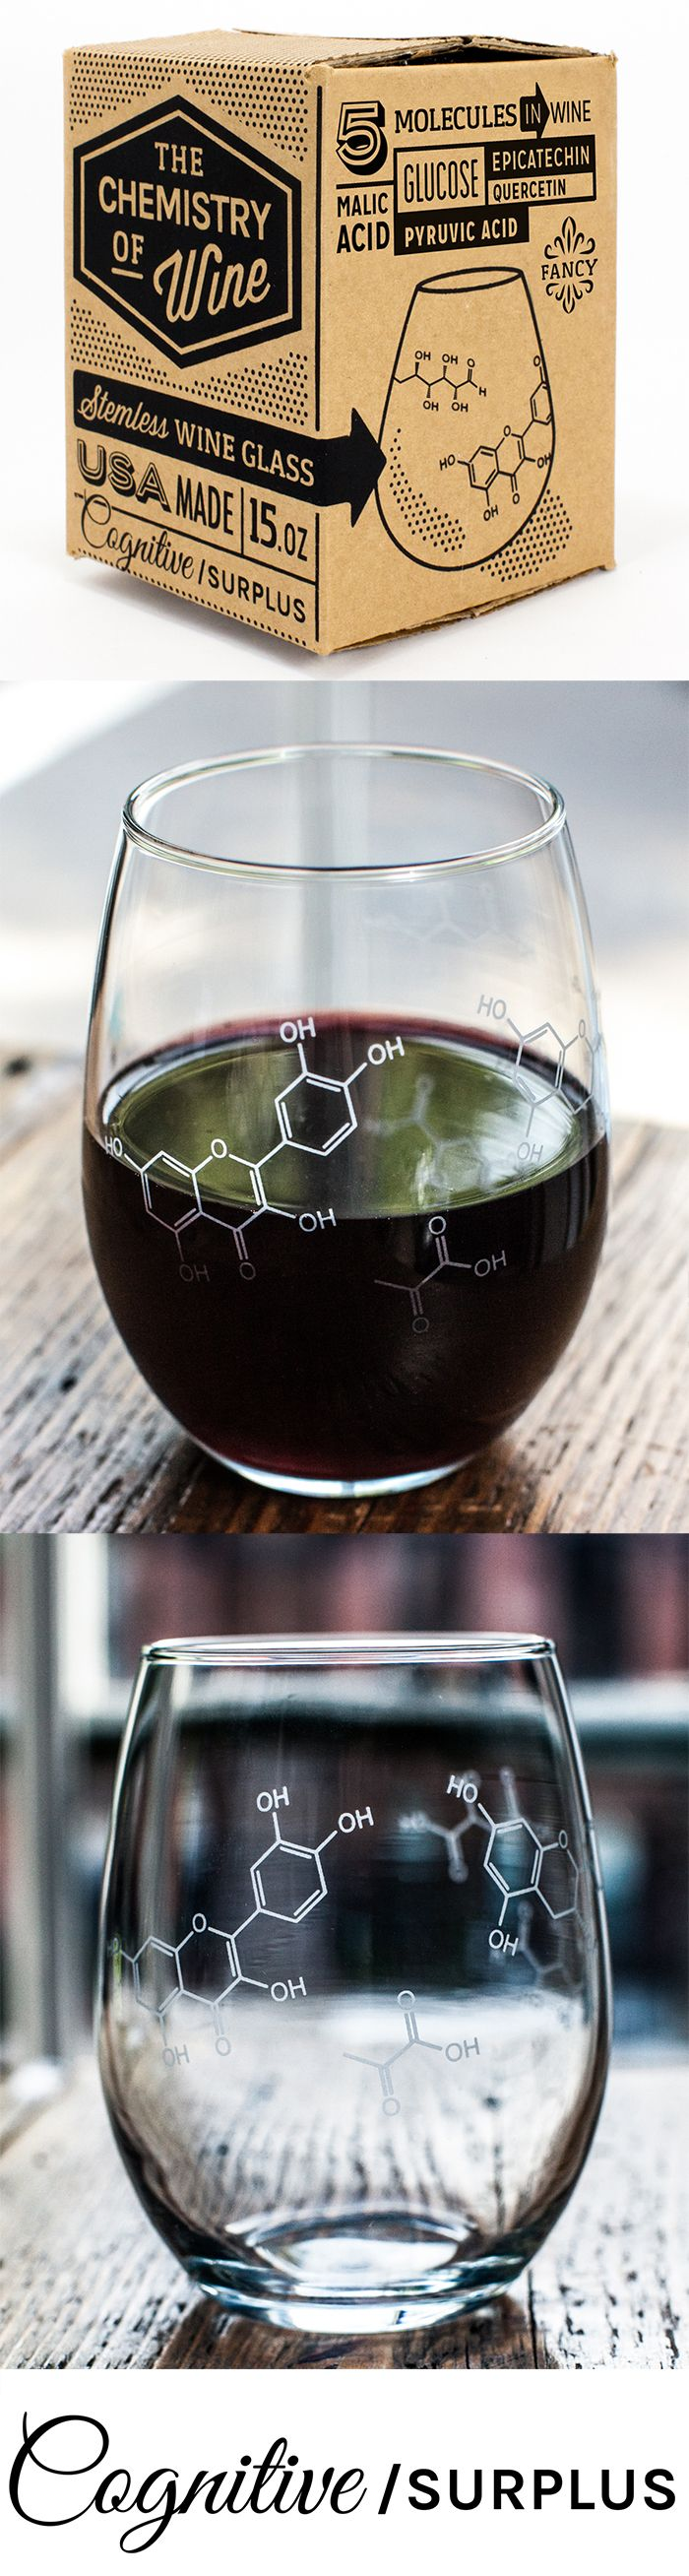 Raise this glass when you pass your comps, to celebrate a successful thesis review, or over a bottle of wine shared with your lab partner.   Add this one to your wish list!